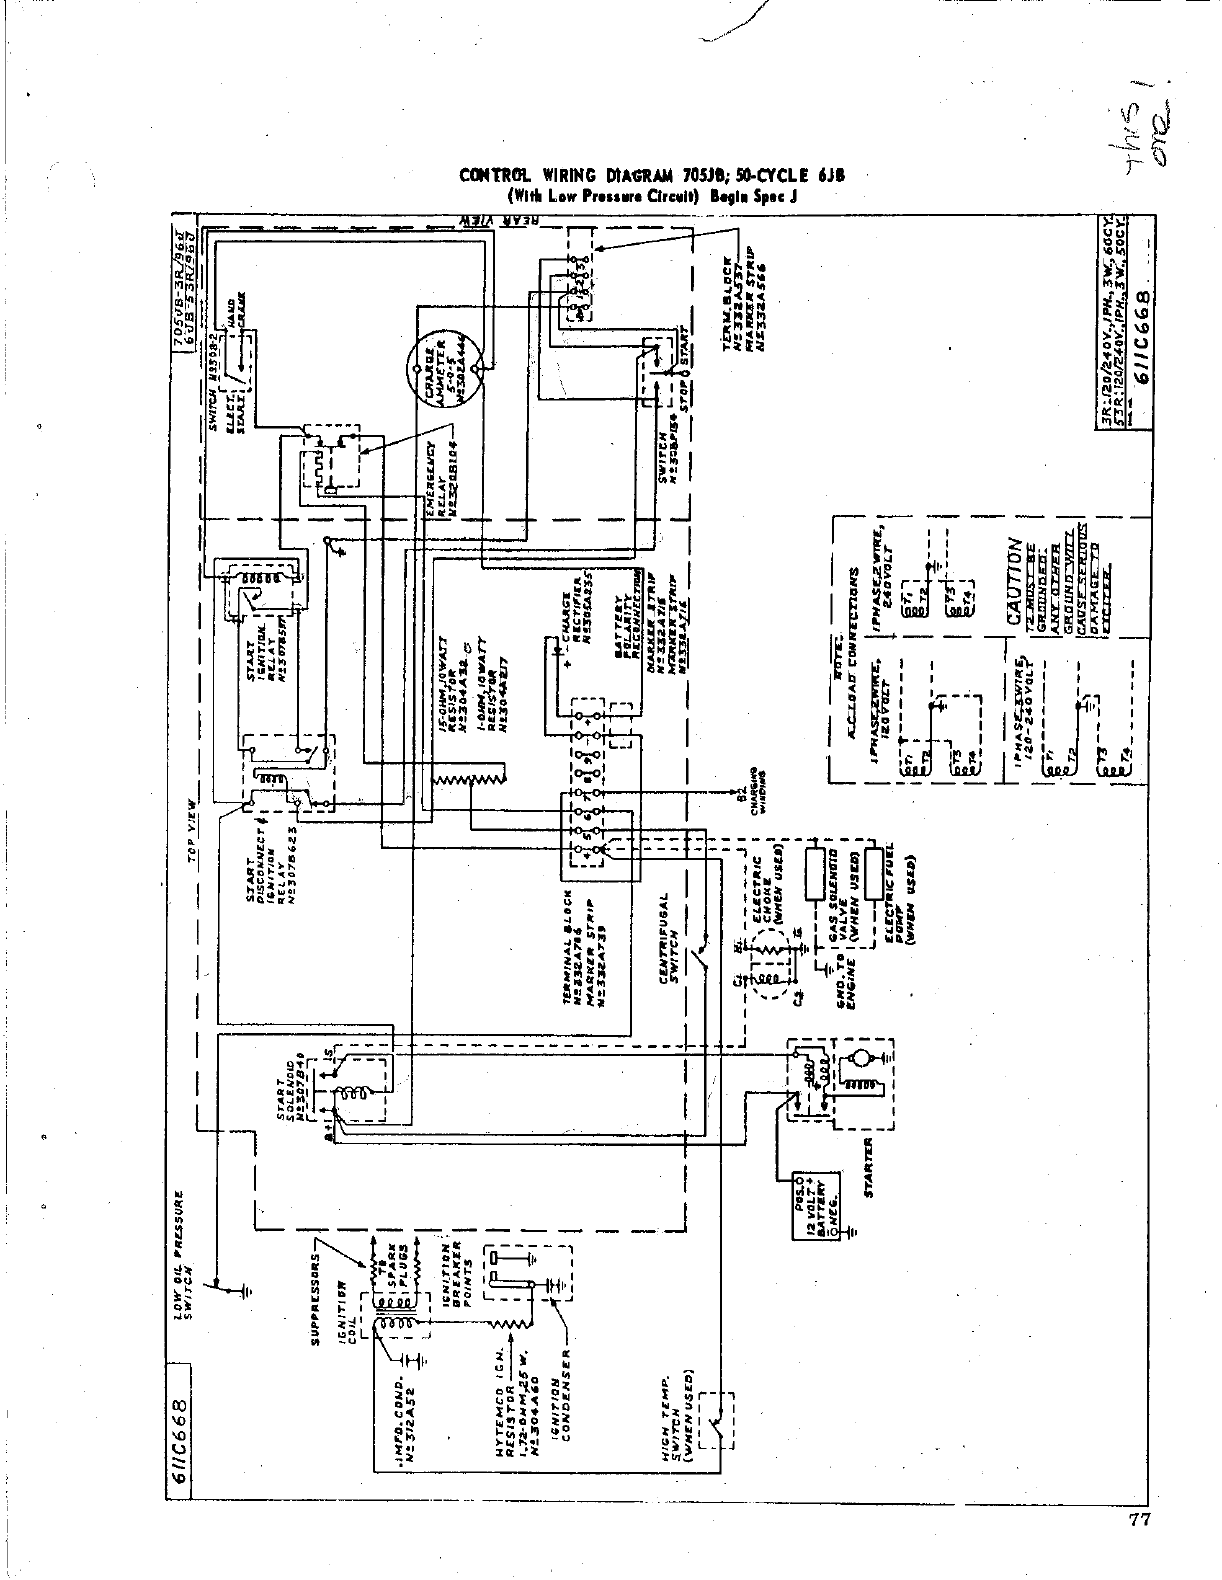 Wiring Diagram For Onan 12 5jc Schematics Diagrams J B 967 0500 Jb Jc Spec A T Genset Service Manual Magneciter End Rh Usermanual Wiki Coil